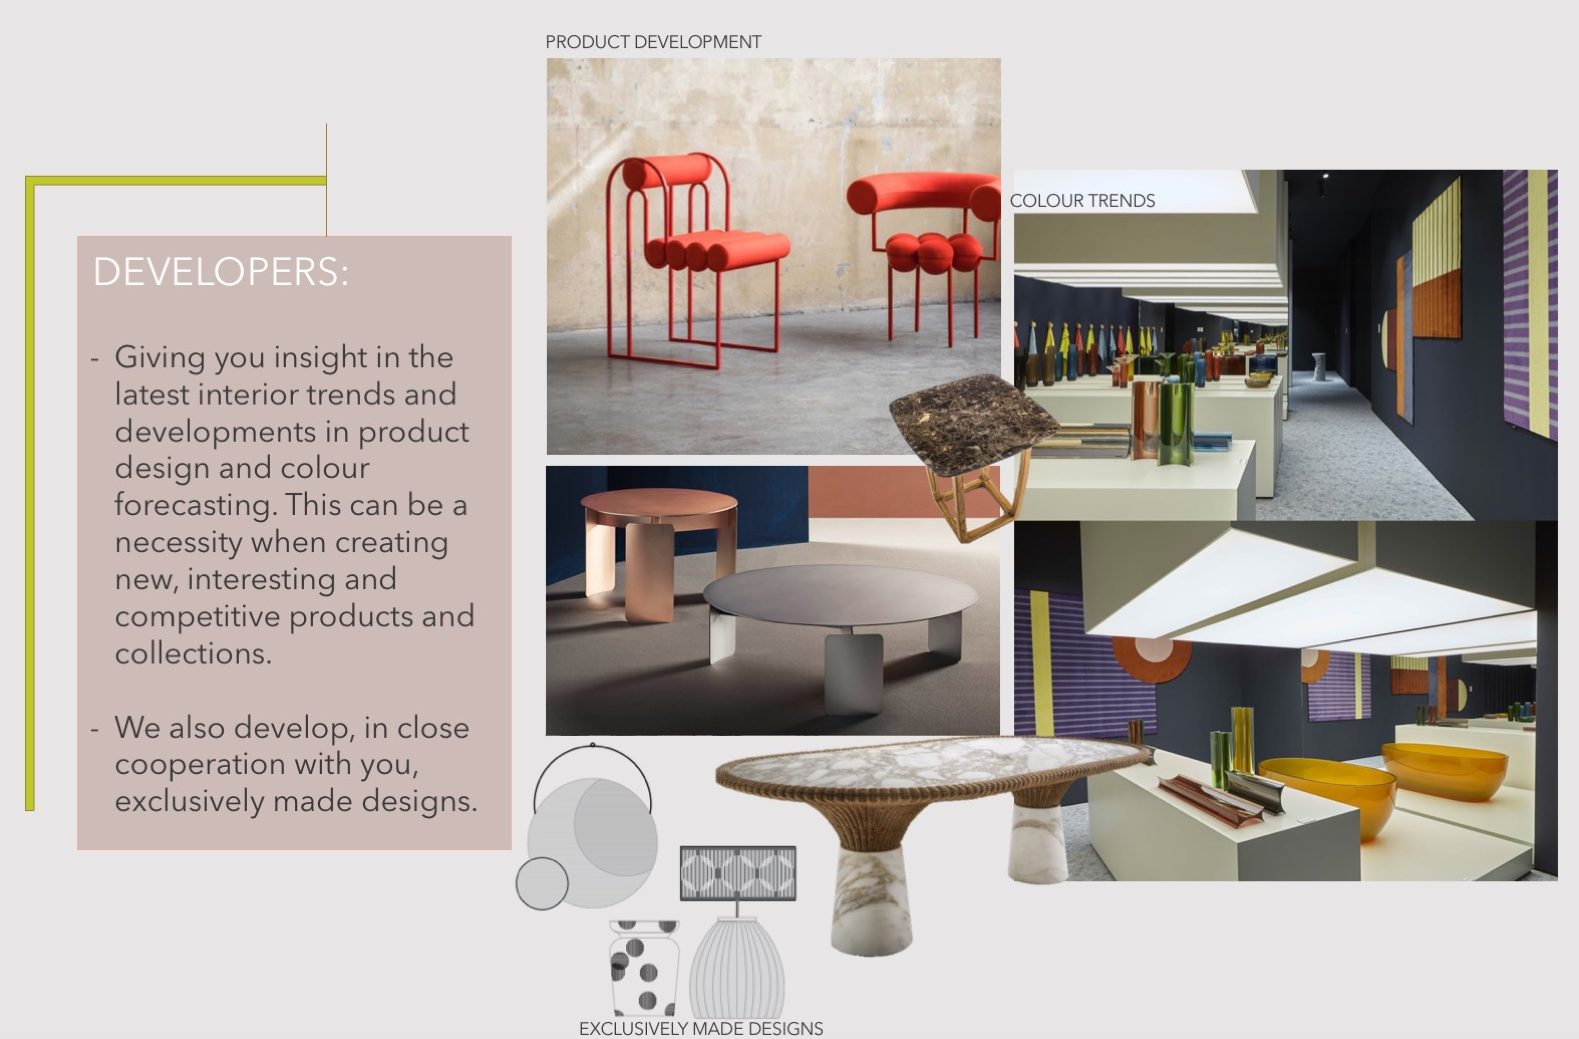 Giving you insight in the latest interior trends and developments in product design and colour forecasting. This can be a necessity when creating new, interesting and competitive products and collections. We also develop, in close cooperation with you, exclusively made designs.